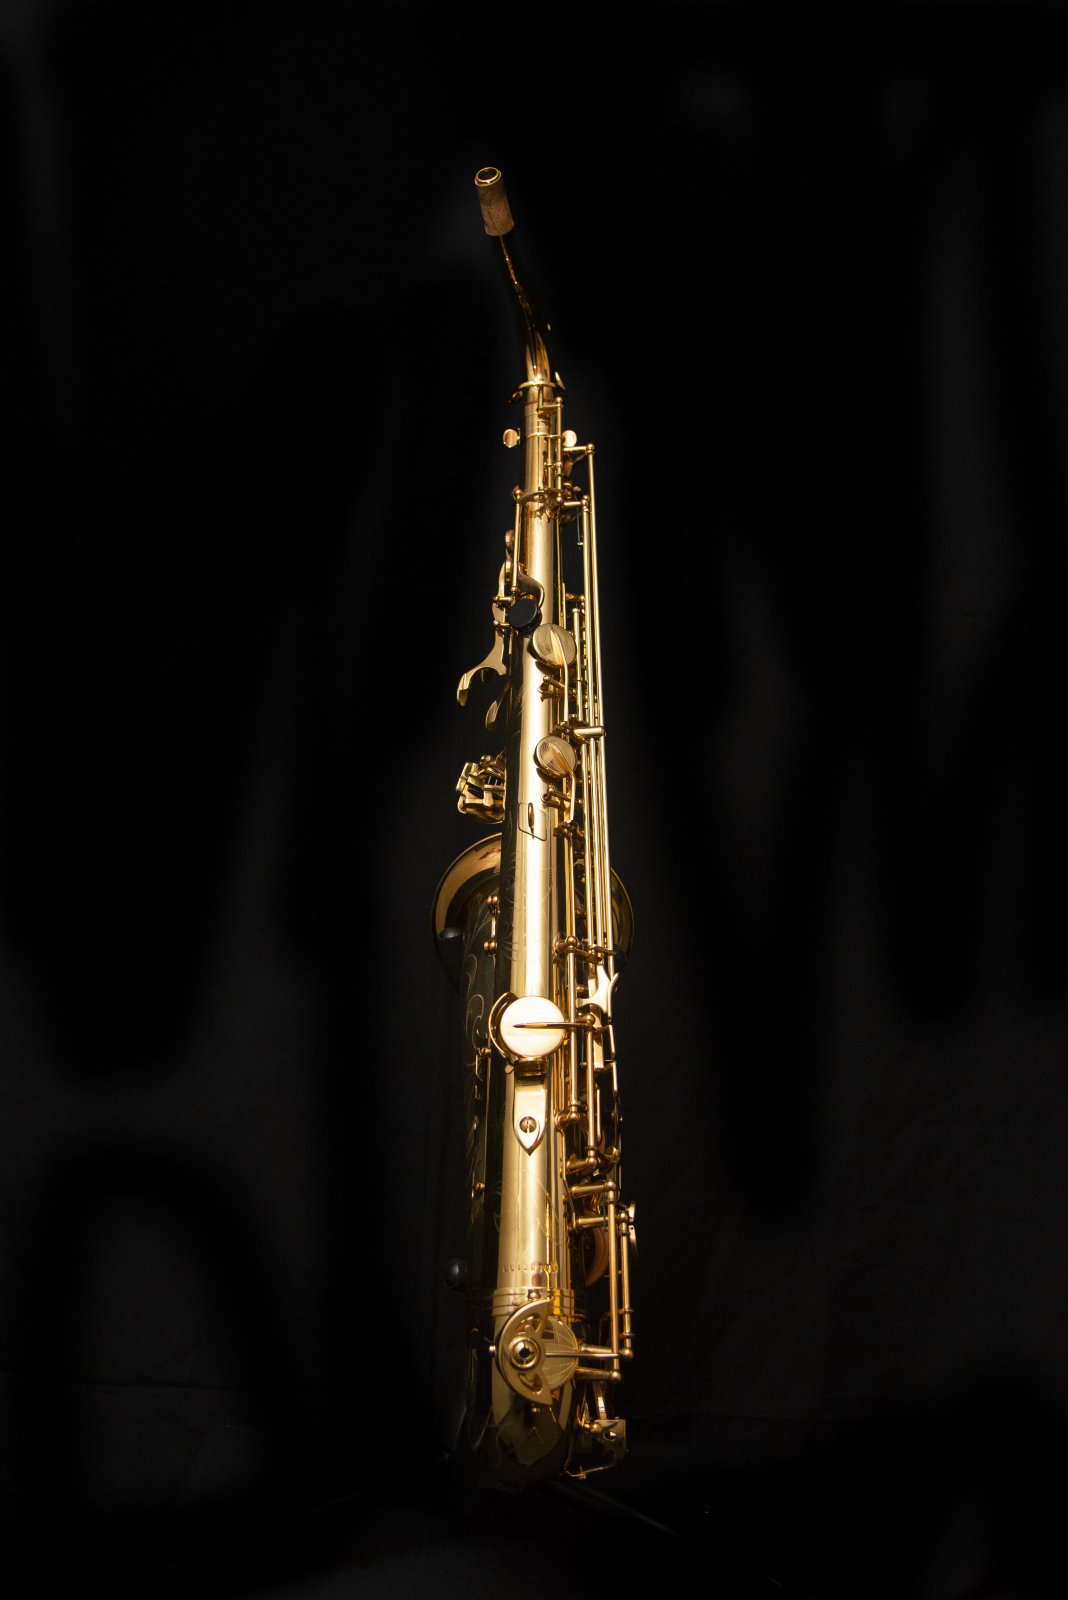 Excellent Buffet Crampon 400 Series Professional Tenor Saxophone Interior Design Ideas Helimdqseriescom